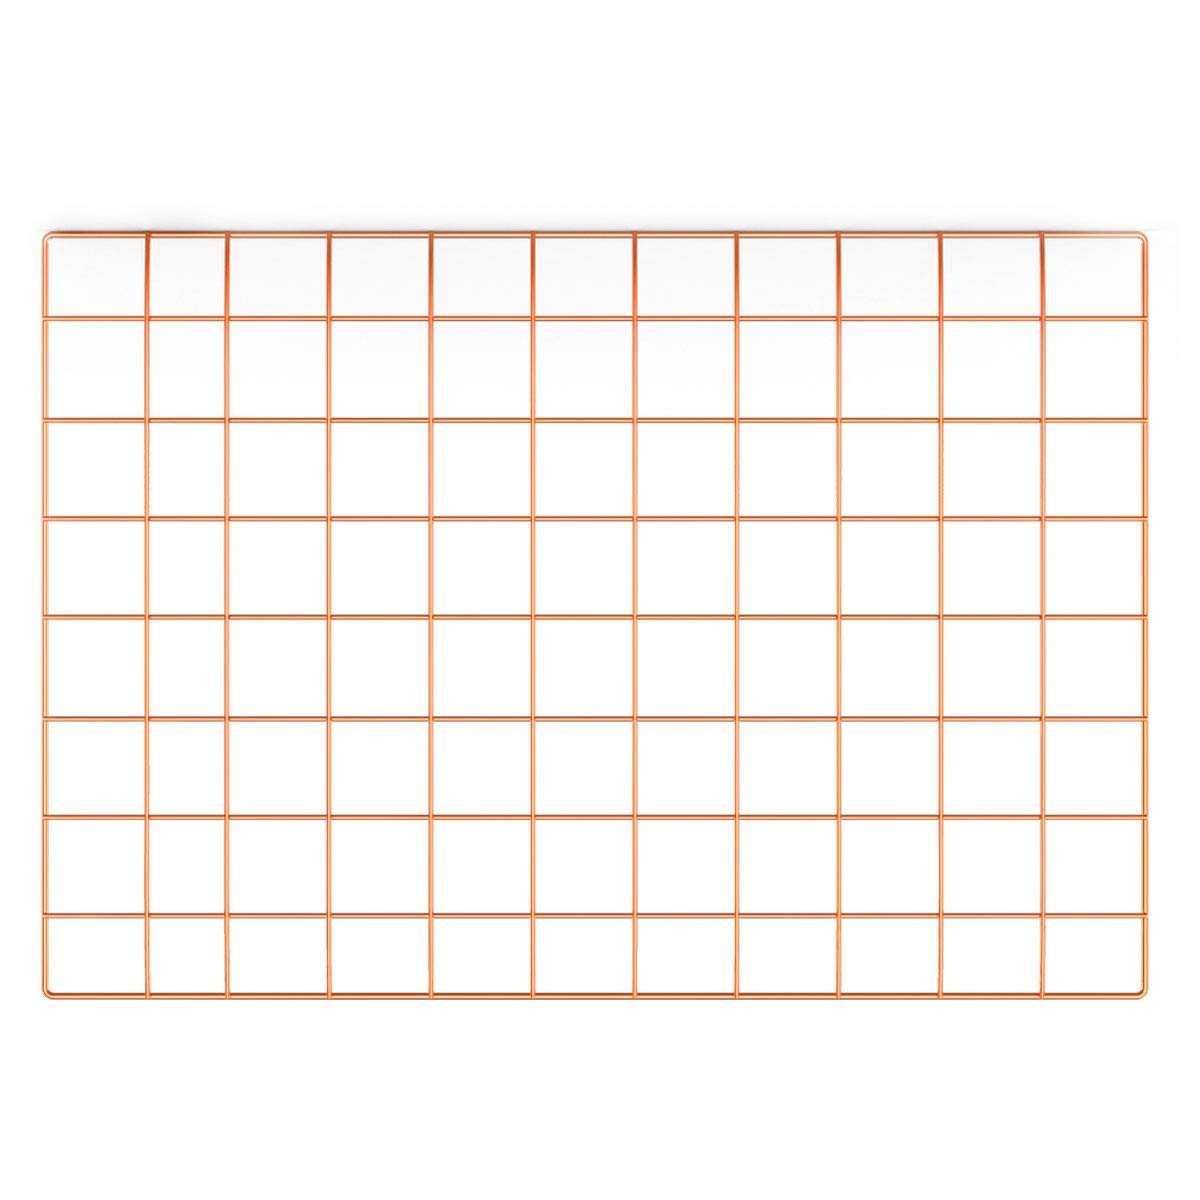 Pulatree Rose Gold Grid Photo Wall, Dorm Decor Wire Wall Grid Panel for Photo Hanging Display Metal Grid Wall Decor Organizer Grid Wall Display Wall Storage 25.6 x 17.7